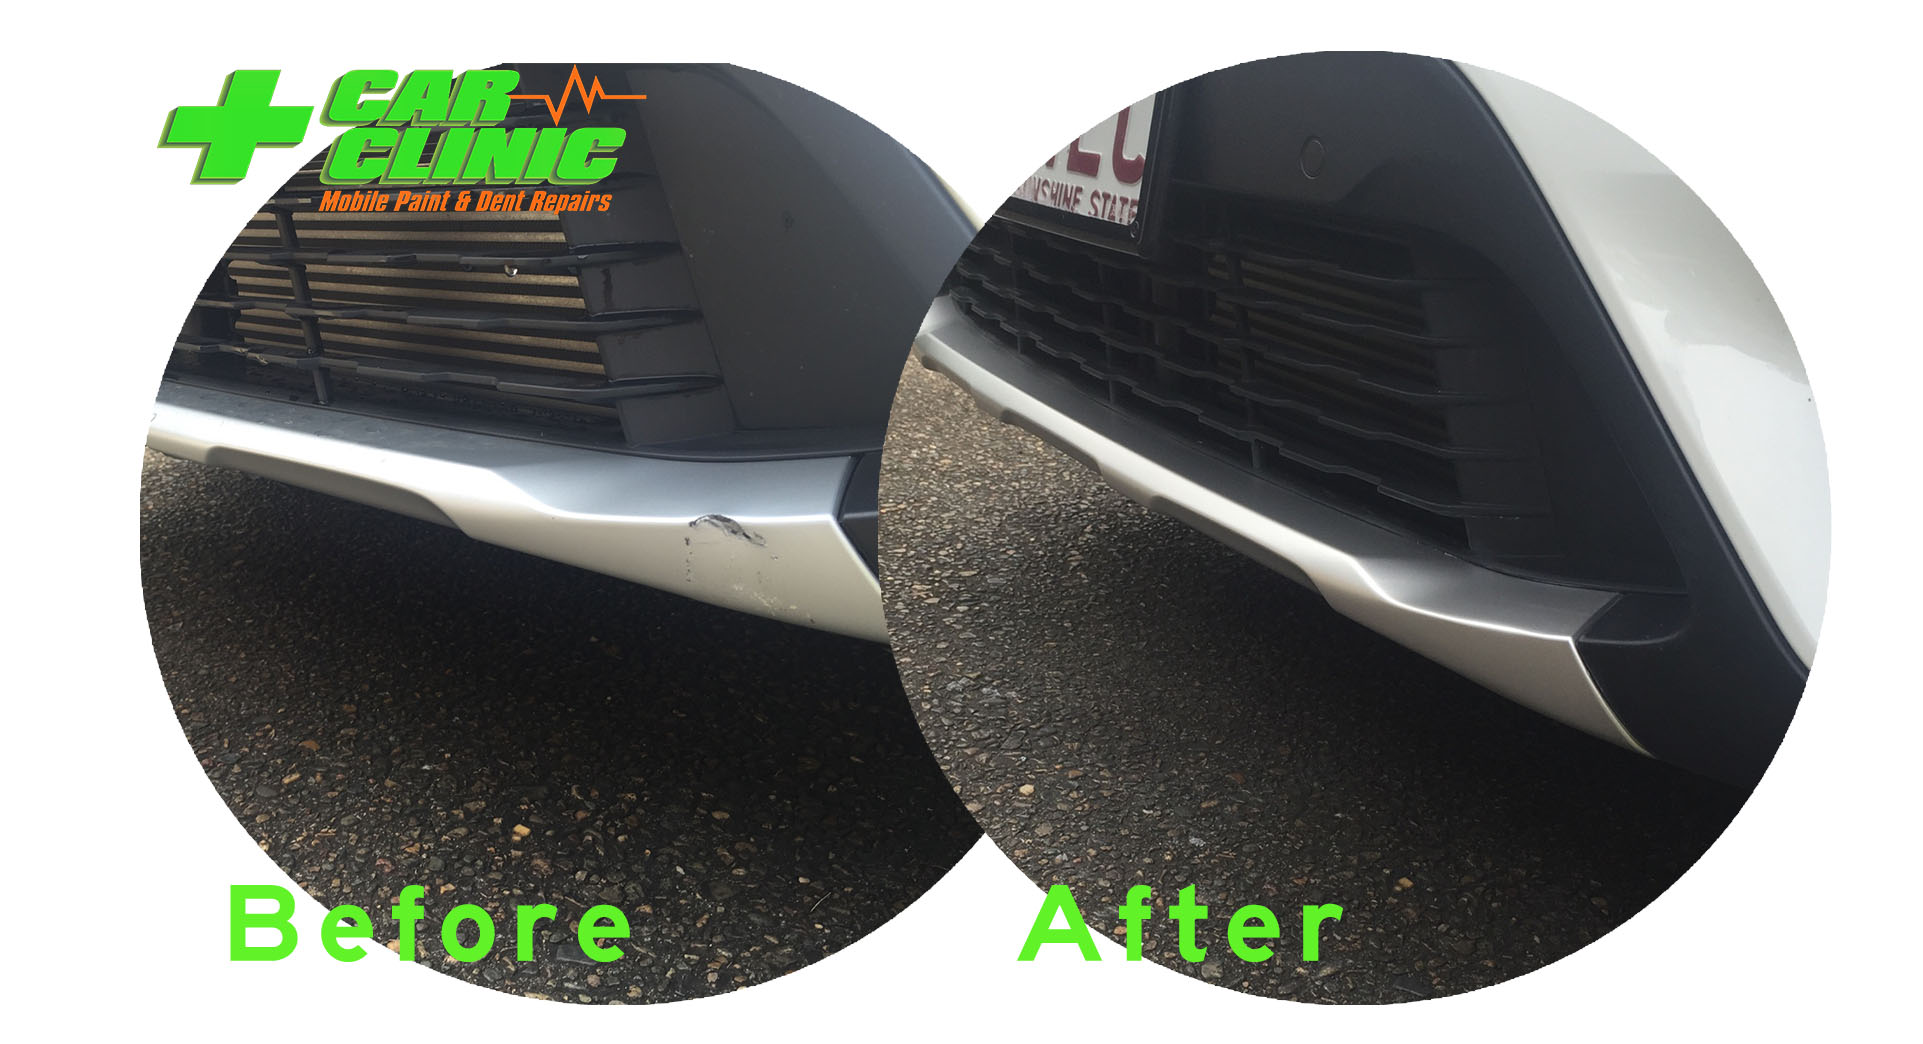 Mobile Paint & Dent Repairs - Brisbane - Before After Image 02